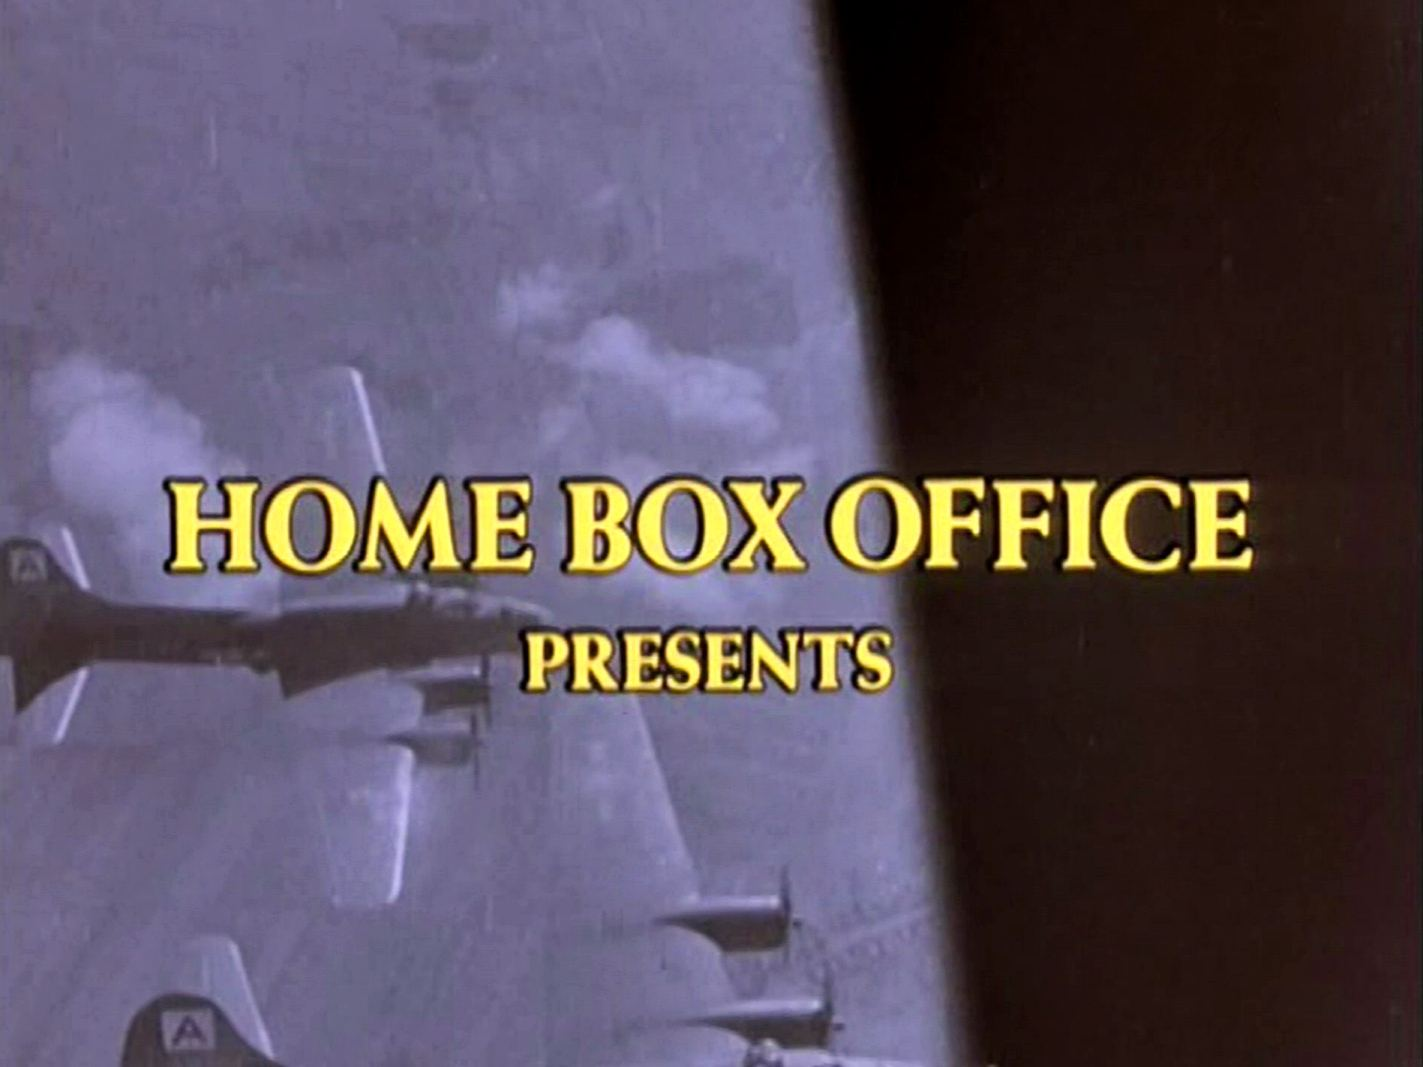 Main title from Reunion at Fairborough (1985) (2).  Home Box Office presents